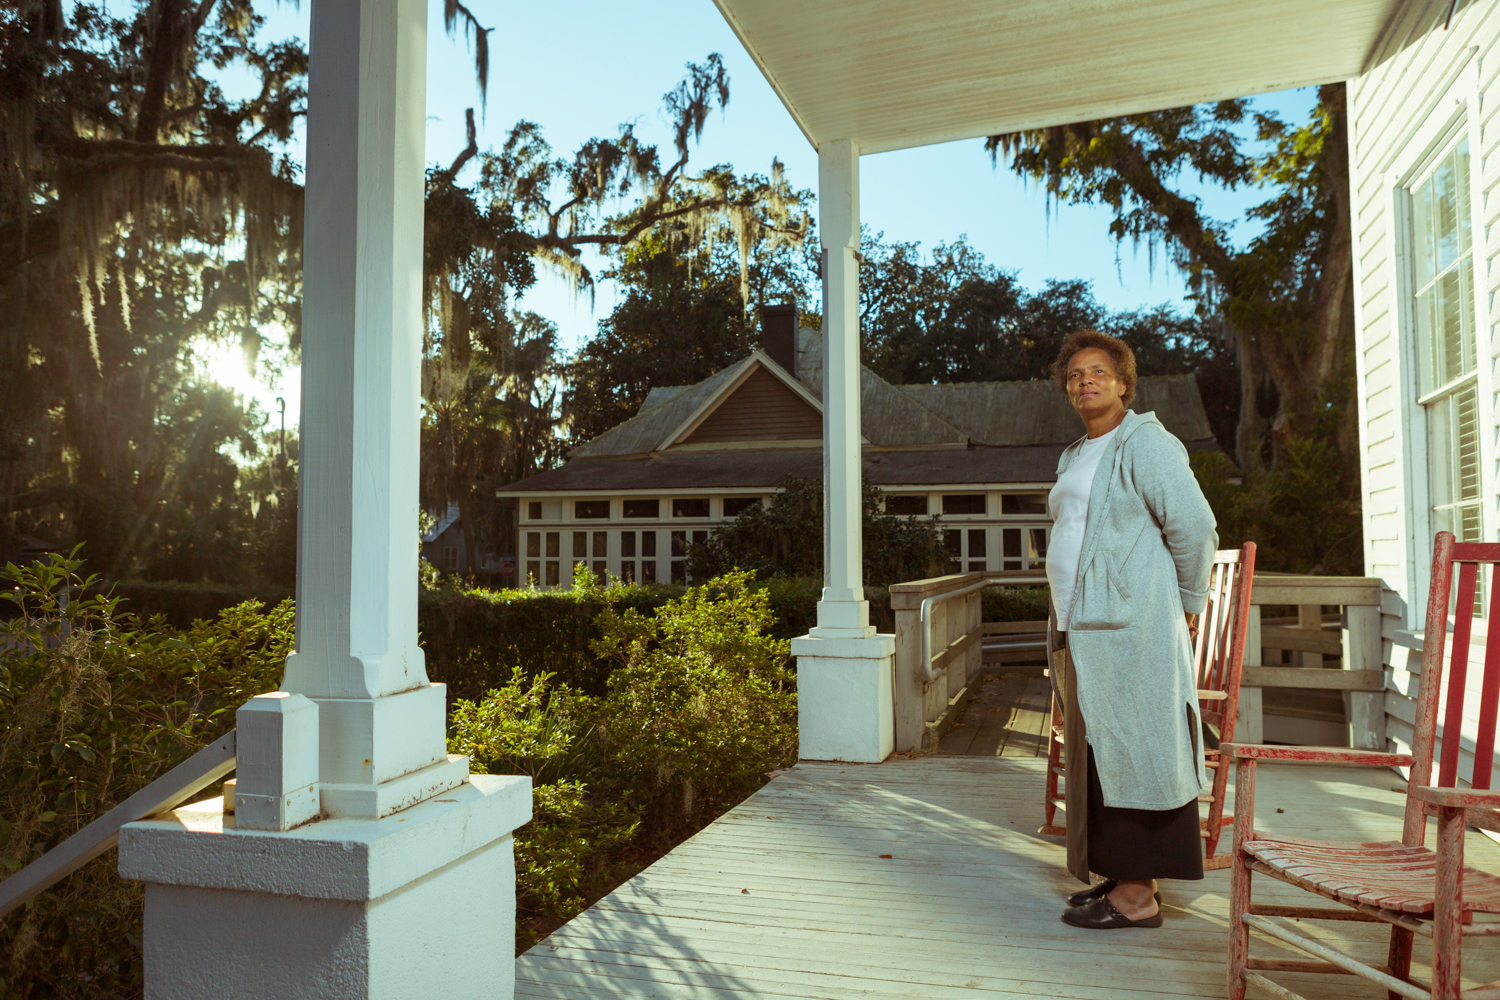 "Dolores Bailey stands on a front porch in Darien. Bailey's extended family is of Gullah Geechee descent; her mother-in-law, Cornelia Bailey, was a Gullah Geechee educator and writer on nearby Sapelo Island. One of the last generation to have been ""born, raised, and schooled"" on the island, Cornelia wrote in ""I Am Sapelo"": ""We don't want to lose the meaning of what a lot of gnats mean, how fresh-dug sweet potatoes taste cooked in hot ashes. I am Sapelo and all the hundreds of others who are descendants; we who remain here is Sapelo. We are one, bound by…high tide, fields, gossips, smoke mullet, and our faith."""